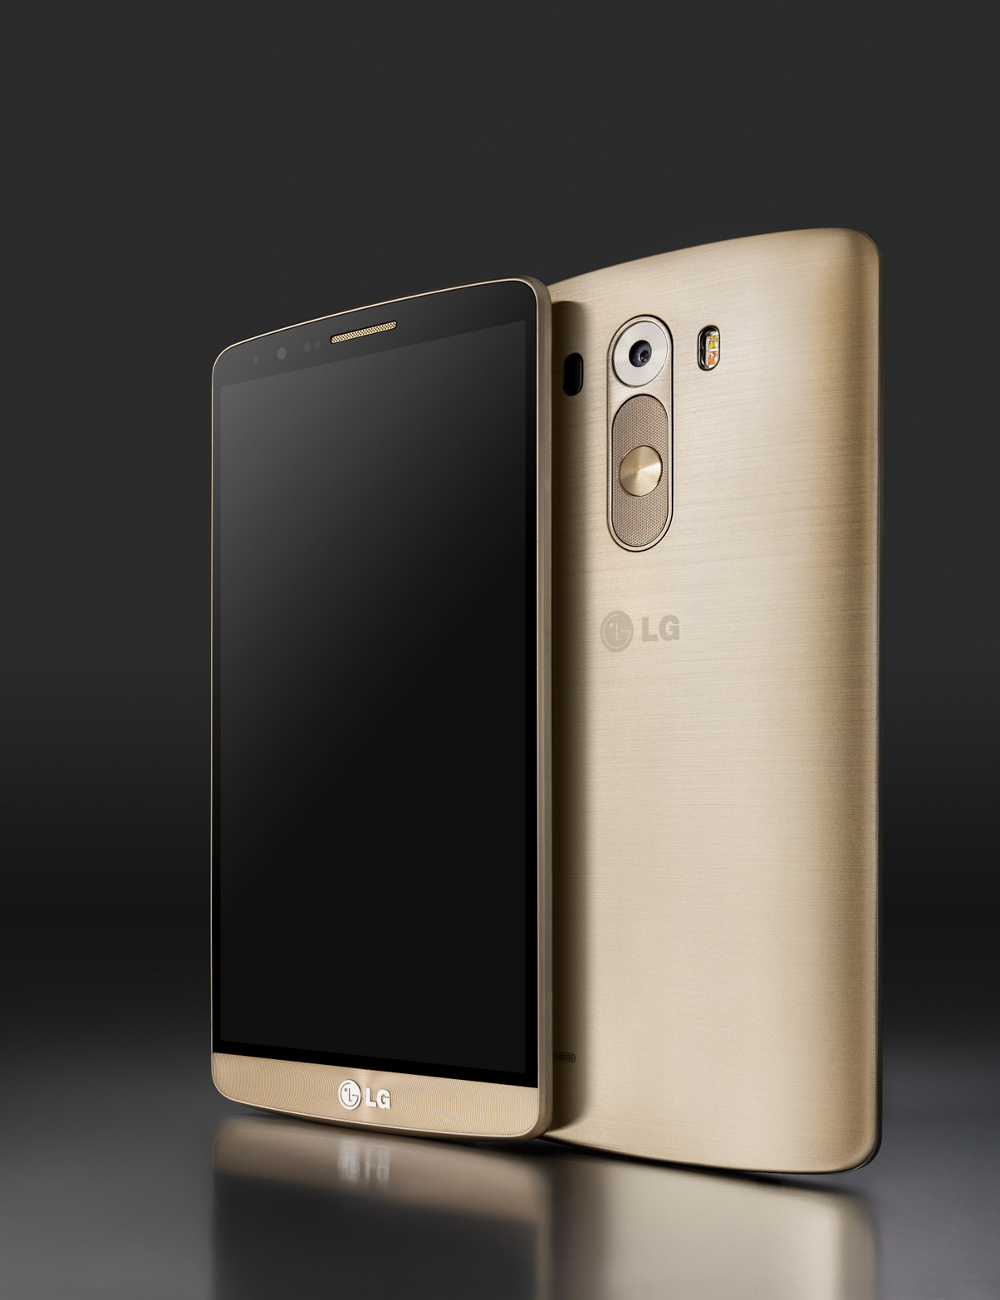 LG-G3-all-the-official-images (4)